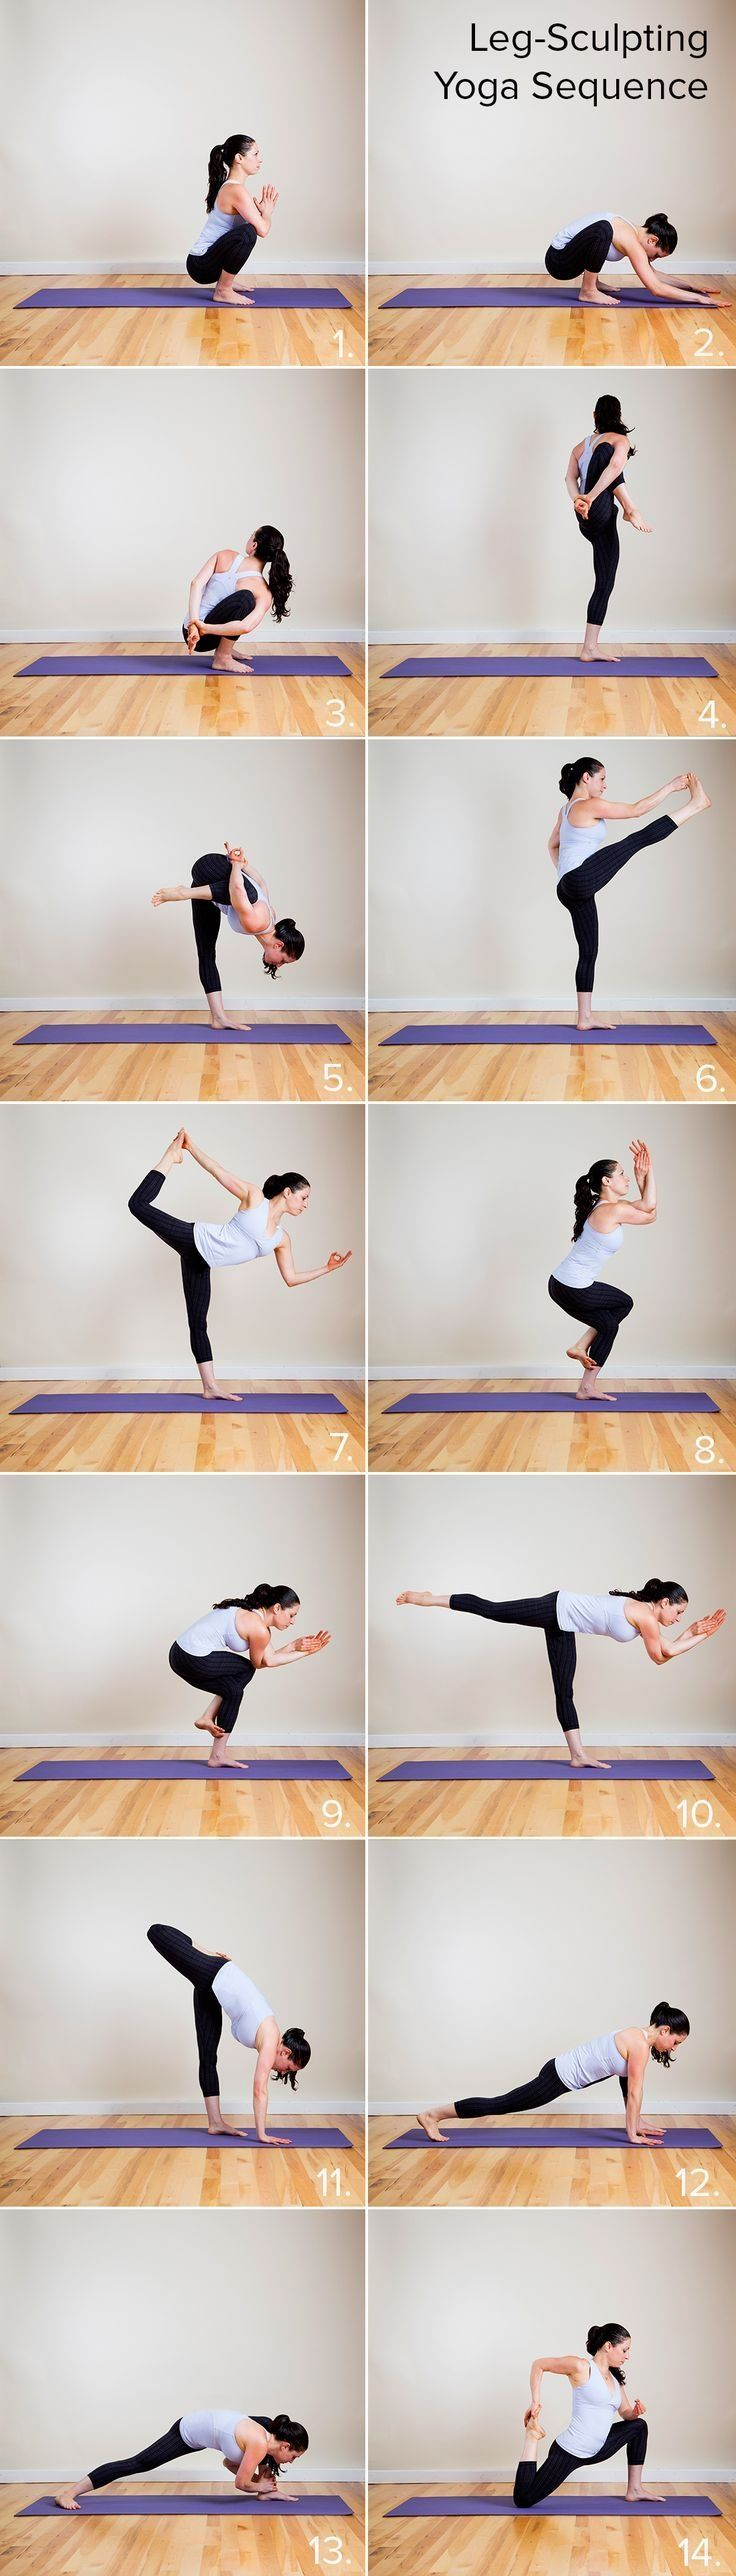 Great leg-sculpting #yoga sequence! #exercise